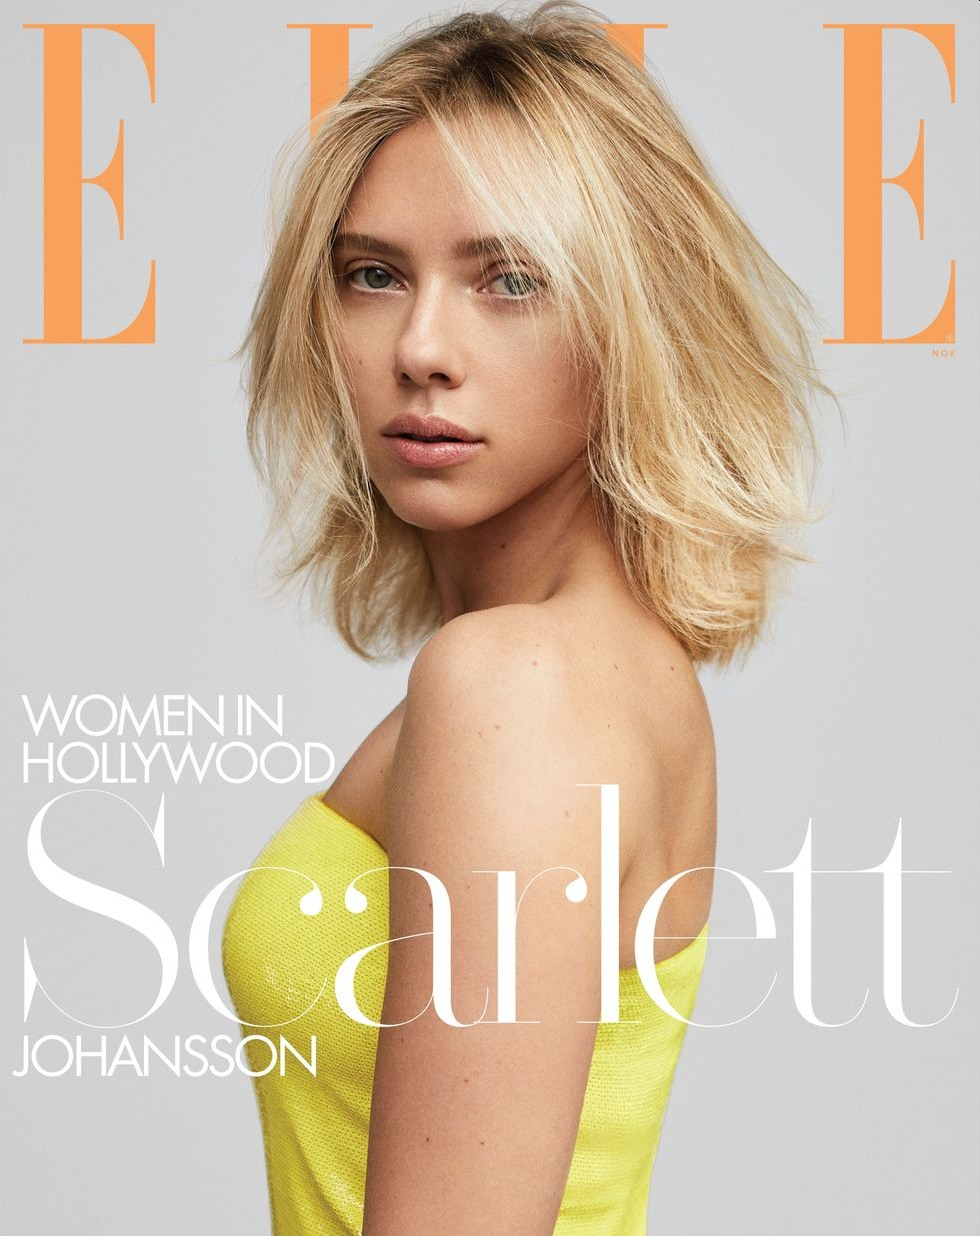 Scarlett Johansson wonders 'what true gender equality looks like'